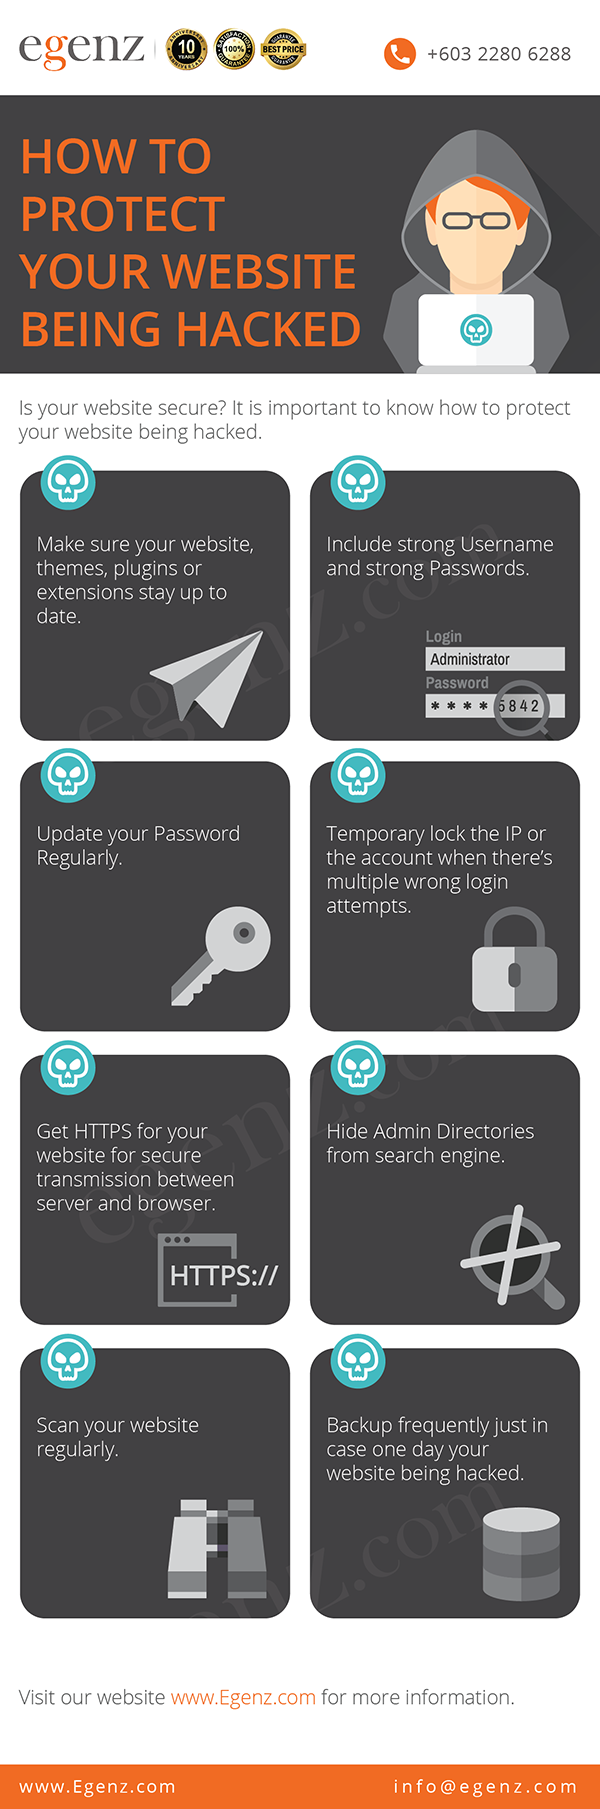 Infographic-How-to-protect-your-Website-being-hacked-Egenz.com